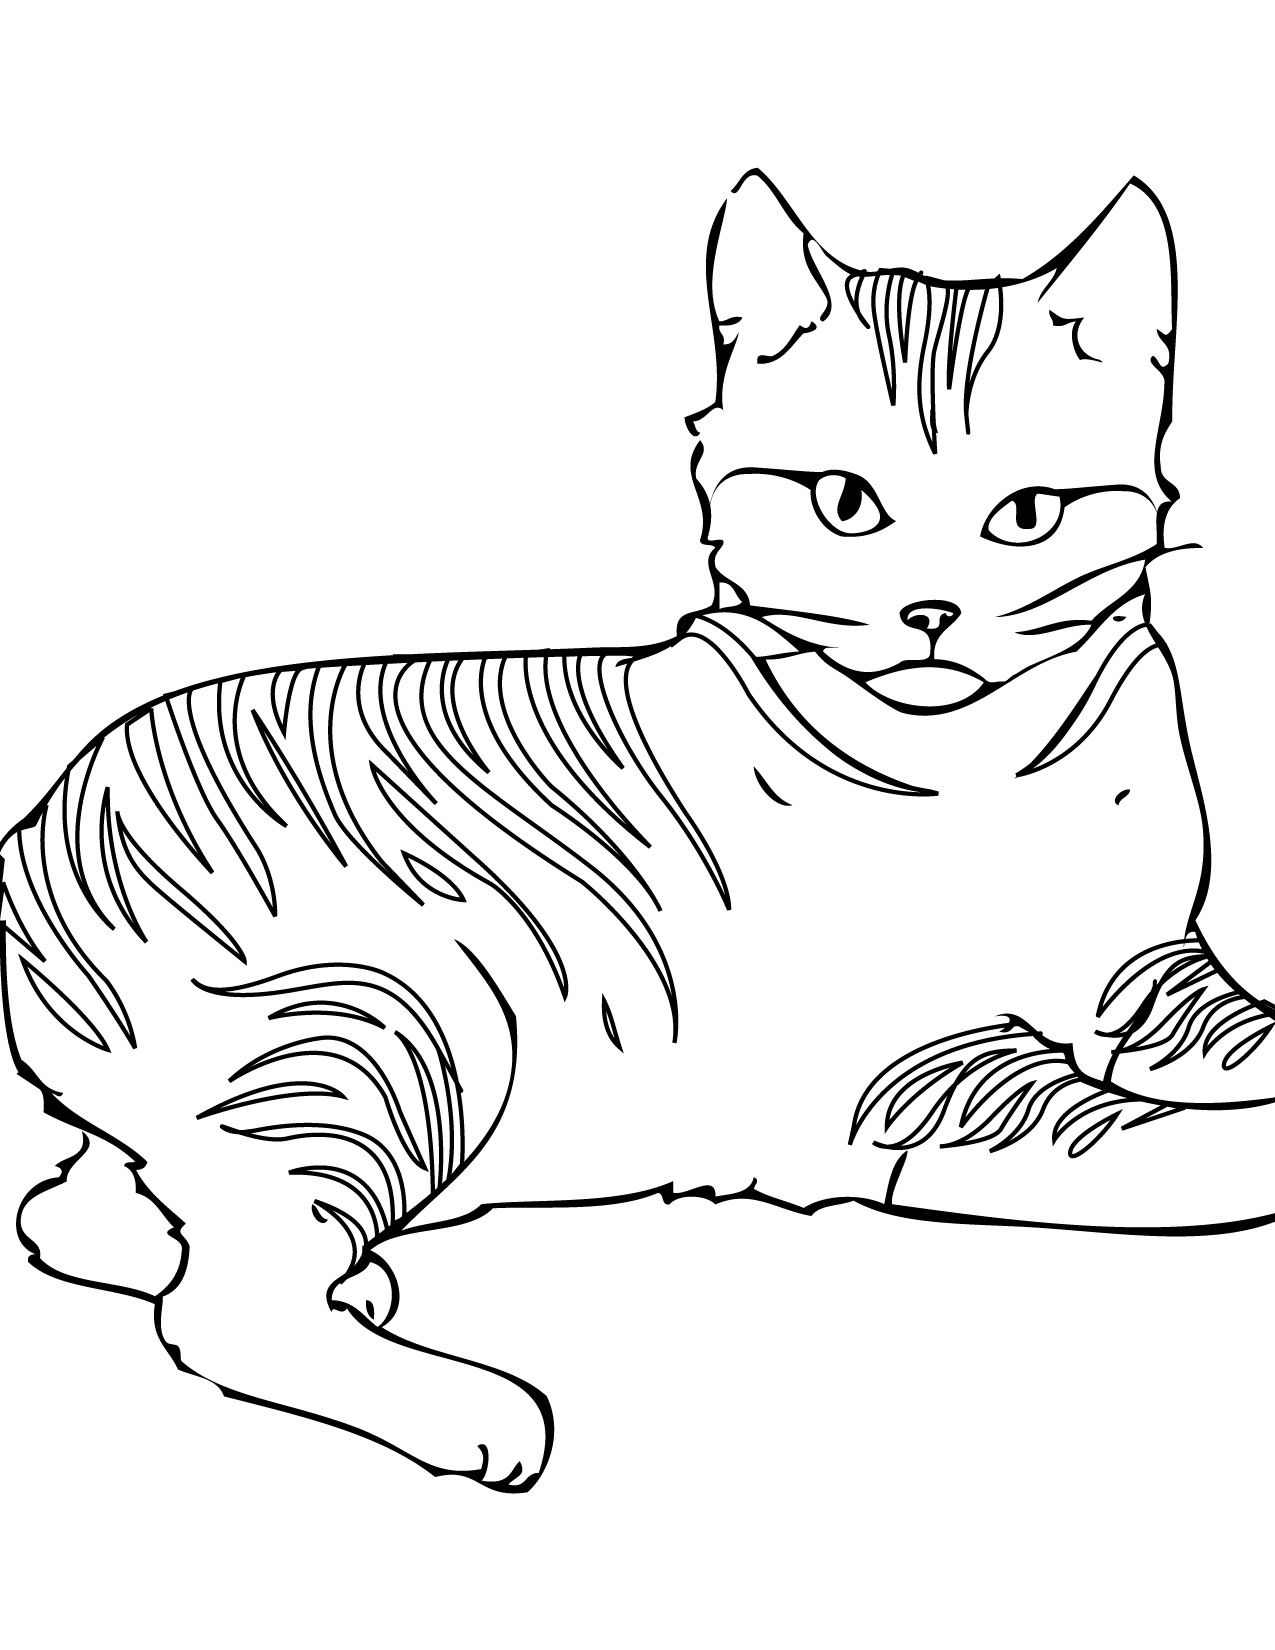 Free Printable Cat Coloring Pages For Kids - Free Printable Cat Coloring Pages